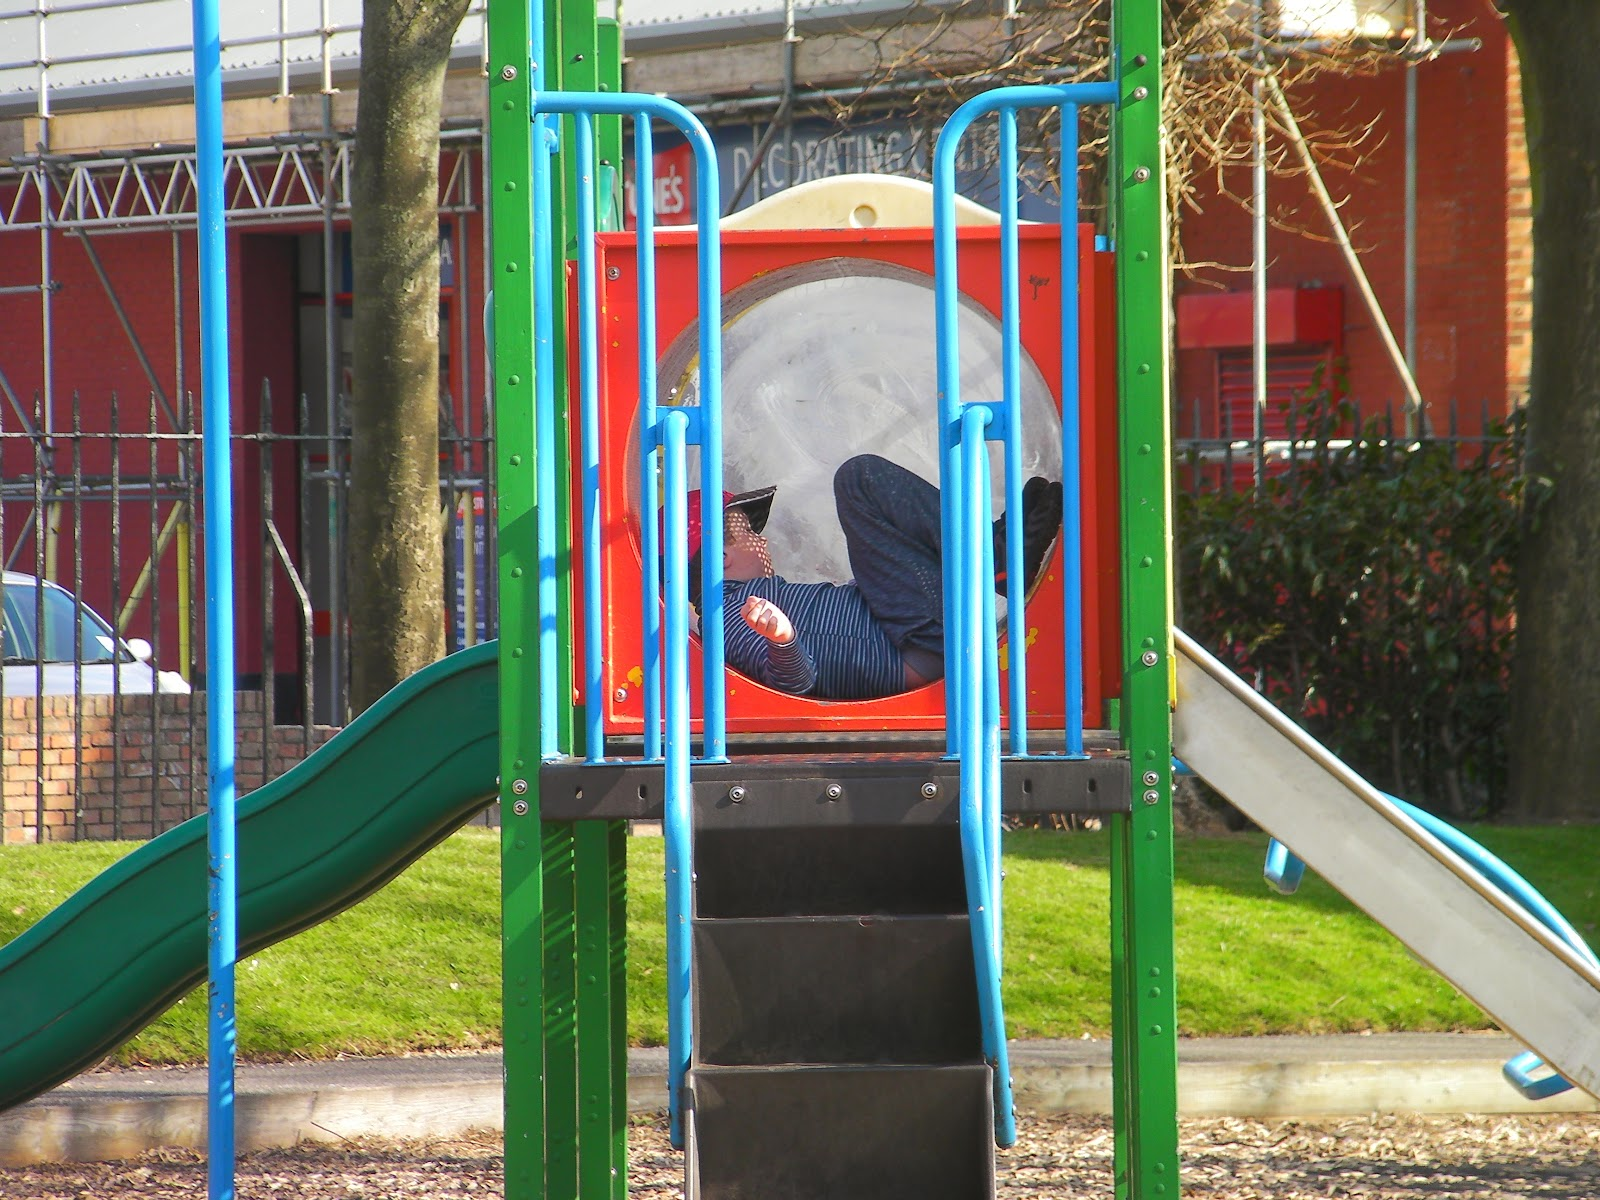 orchard road play area southsea opposite bishops paint and fratton railway station